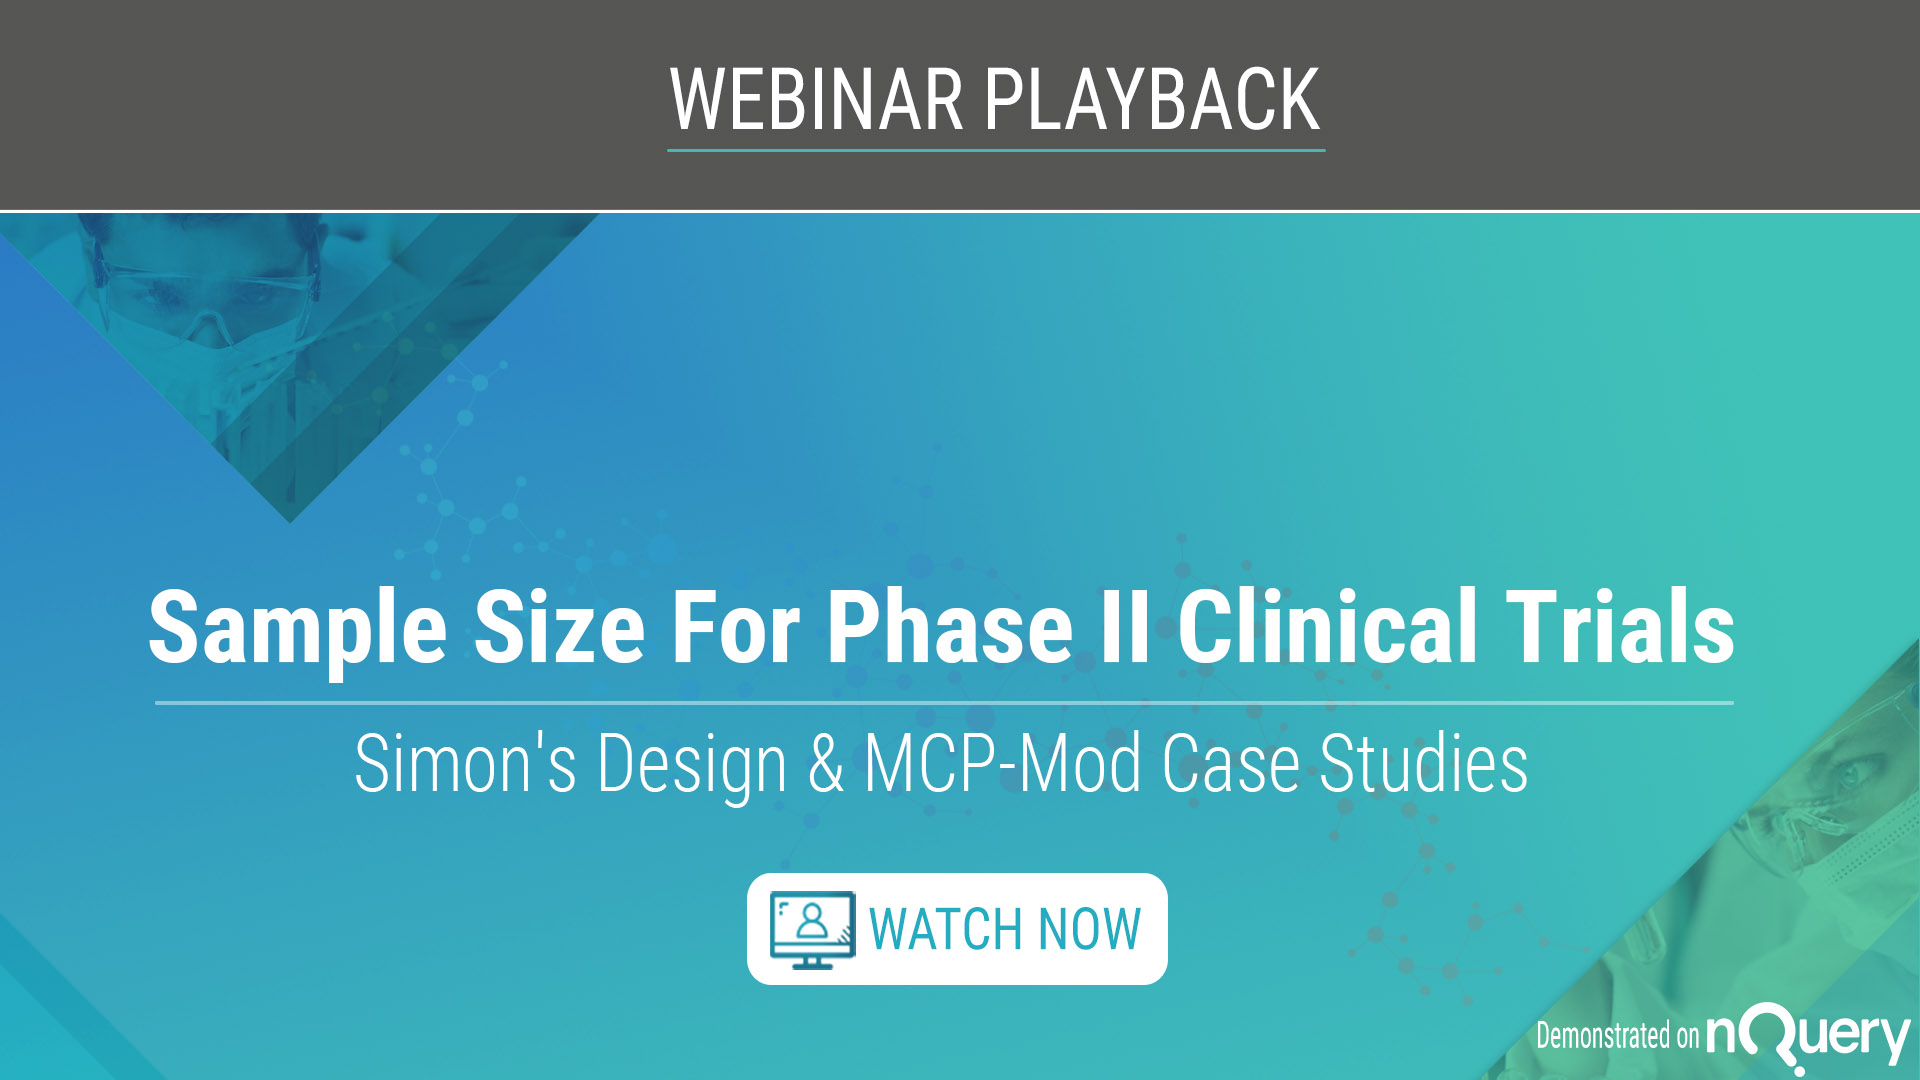 sample-size-for-phase-ii-clinical-trials-simons-design-and-mcp-mod-on-demand-1920-1080